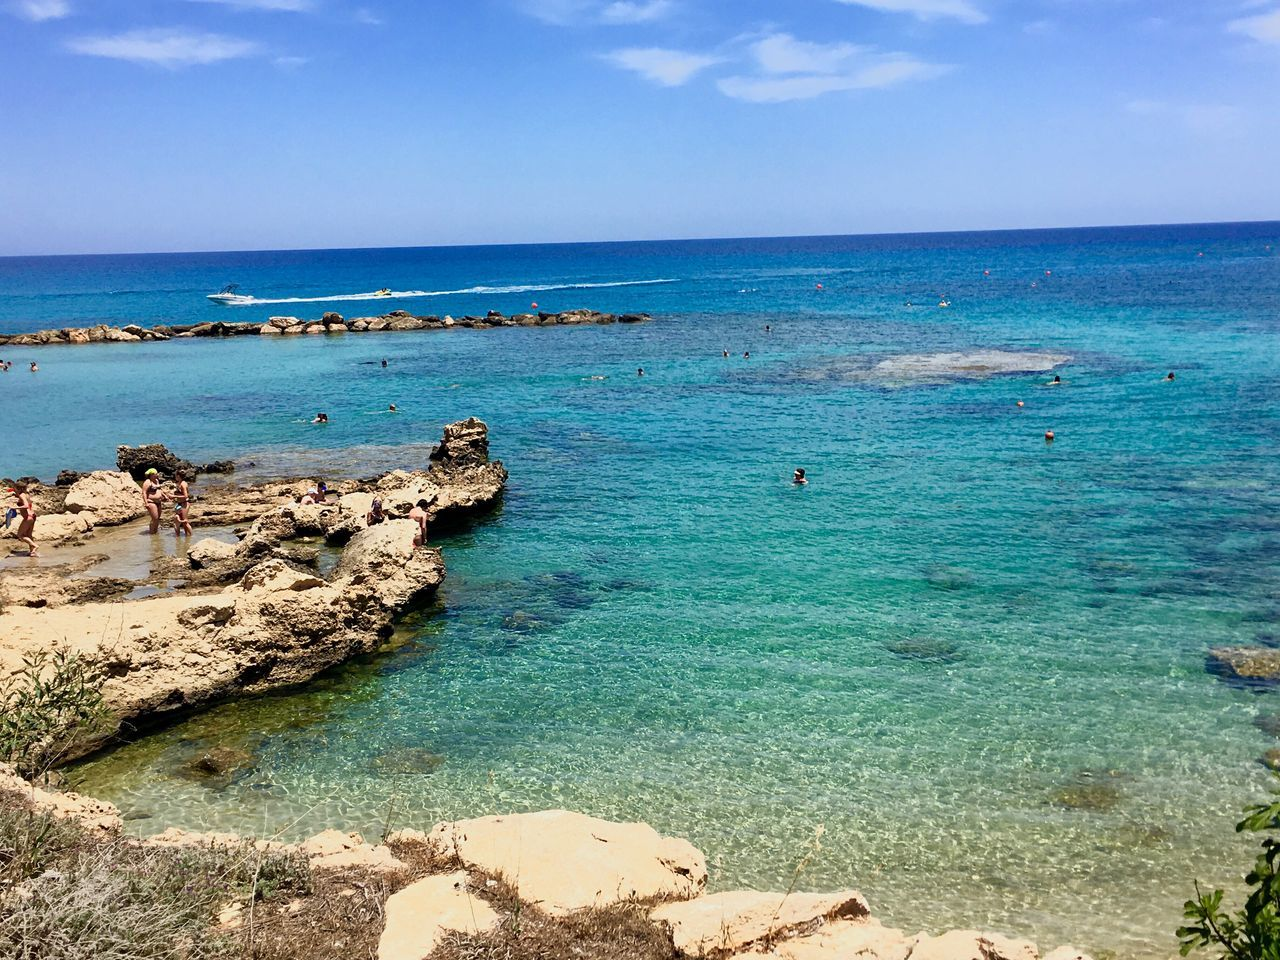 Cyprus Protaras Summer 2016 Bay Greenbay Clear Waters Hot Sandy Sunny Check This Out Hello World Relaxing Enjoying Life Taking Photos Feel The Journey Original Experiences